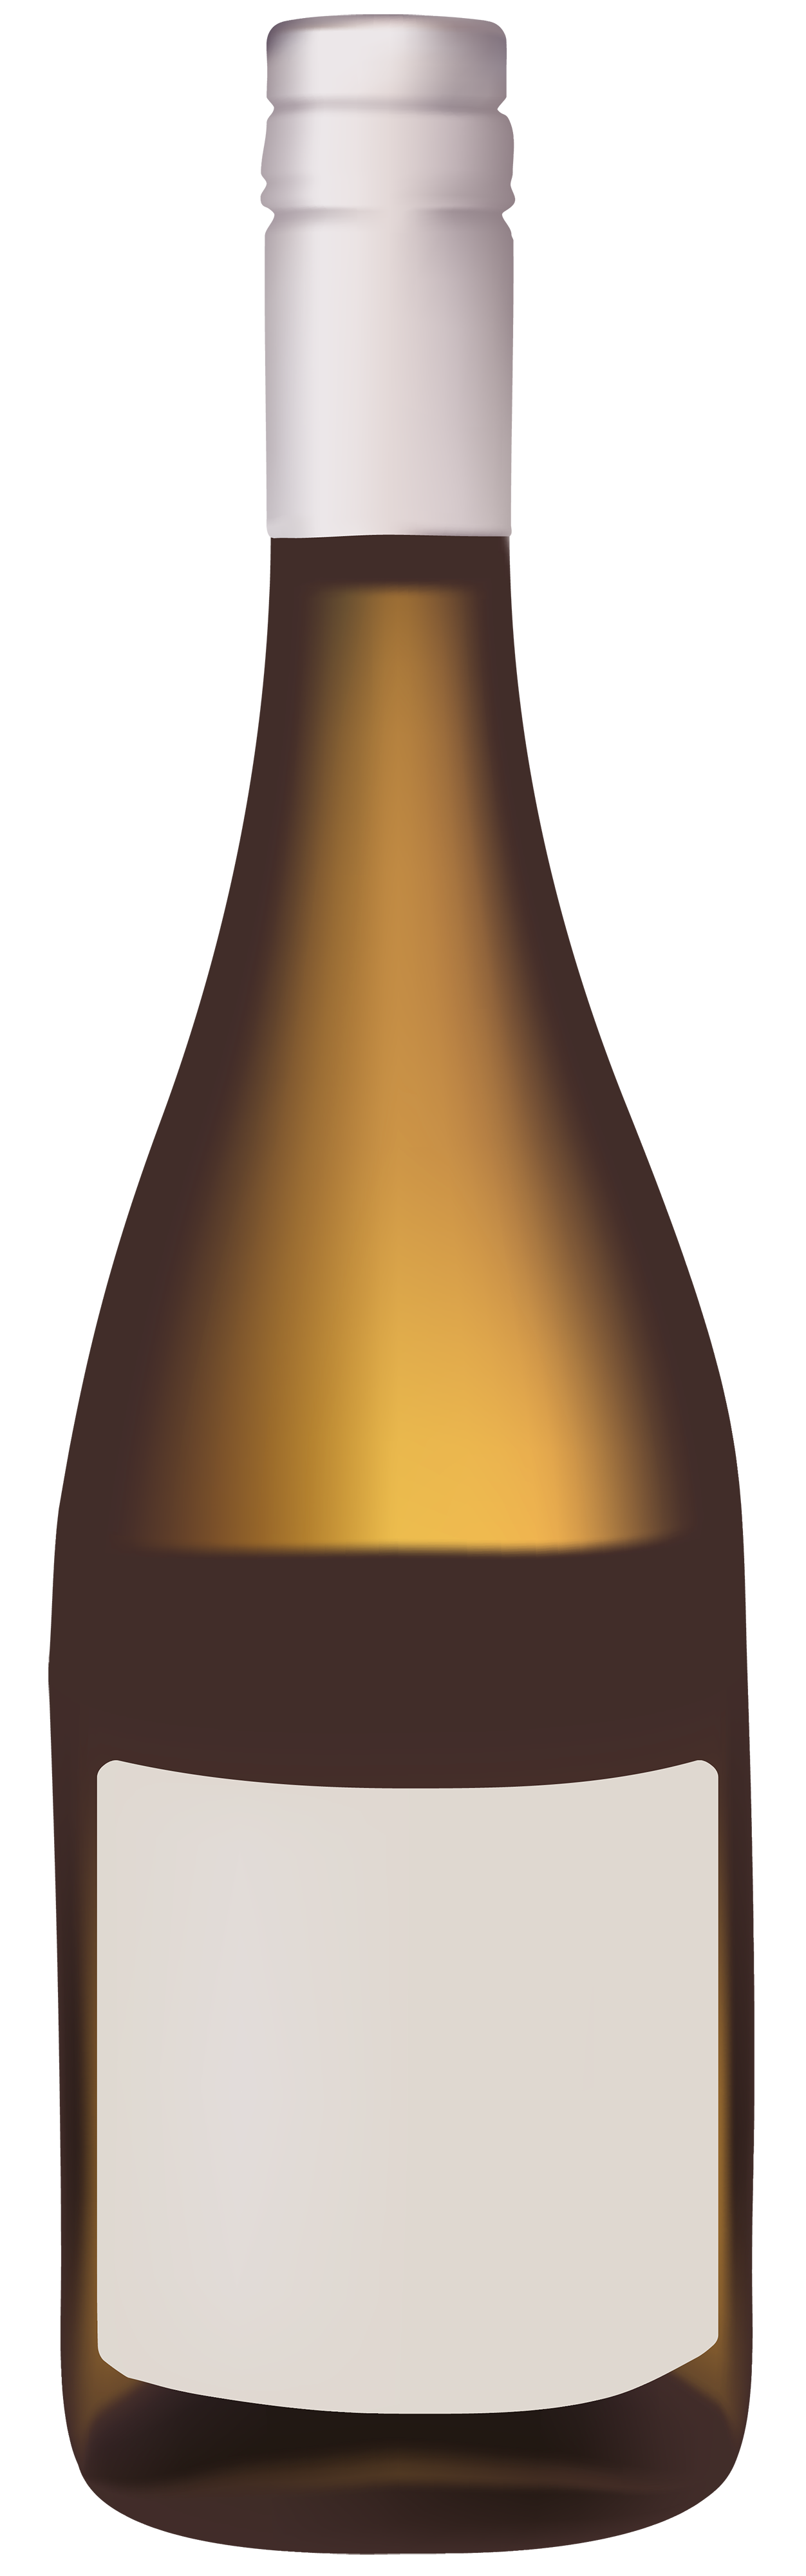 Alcohol bottle clipart png. Collection of wine